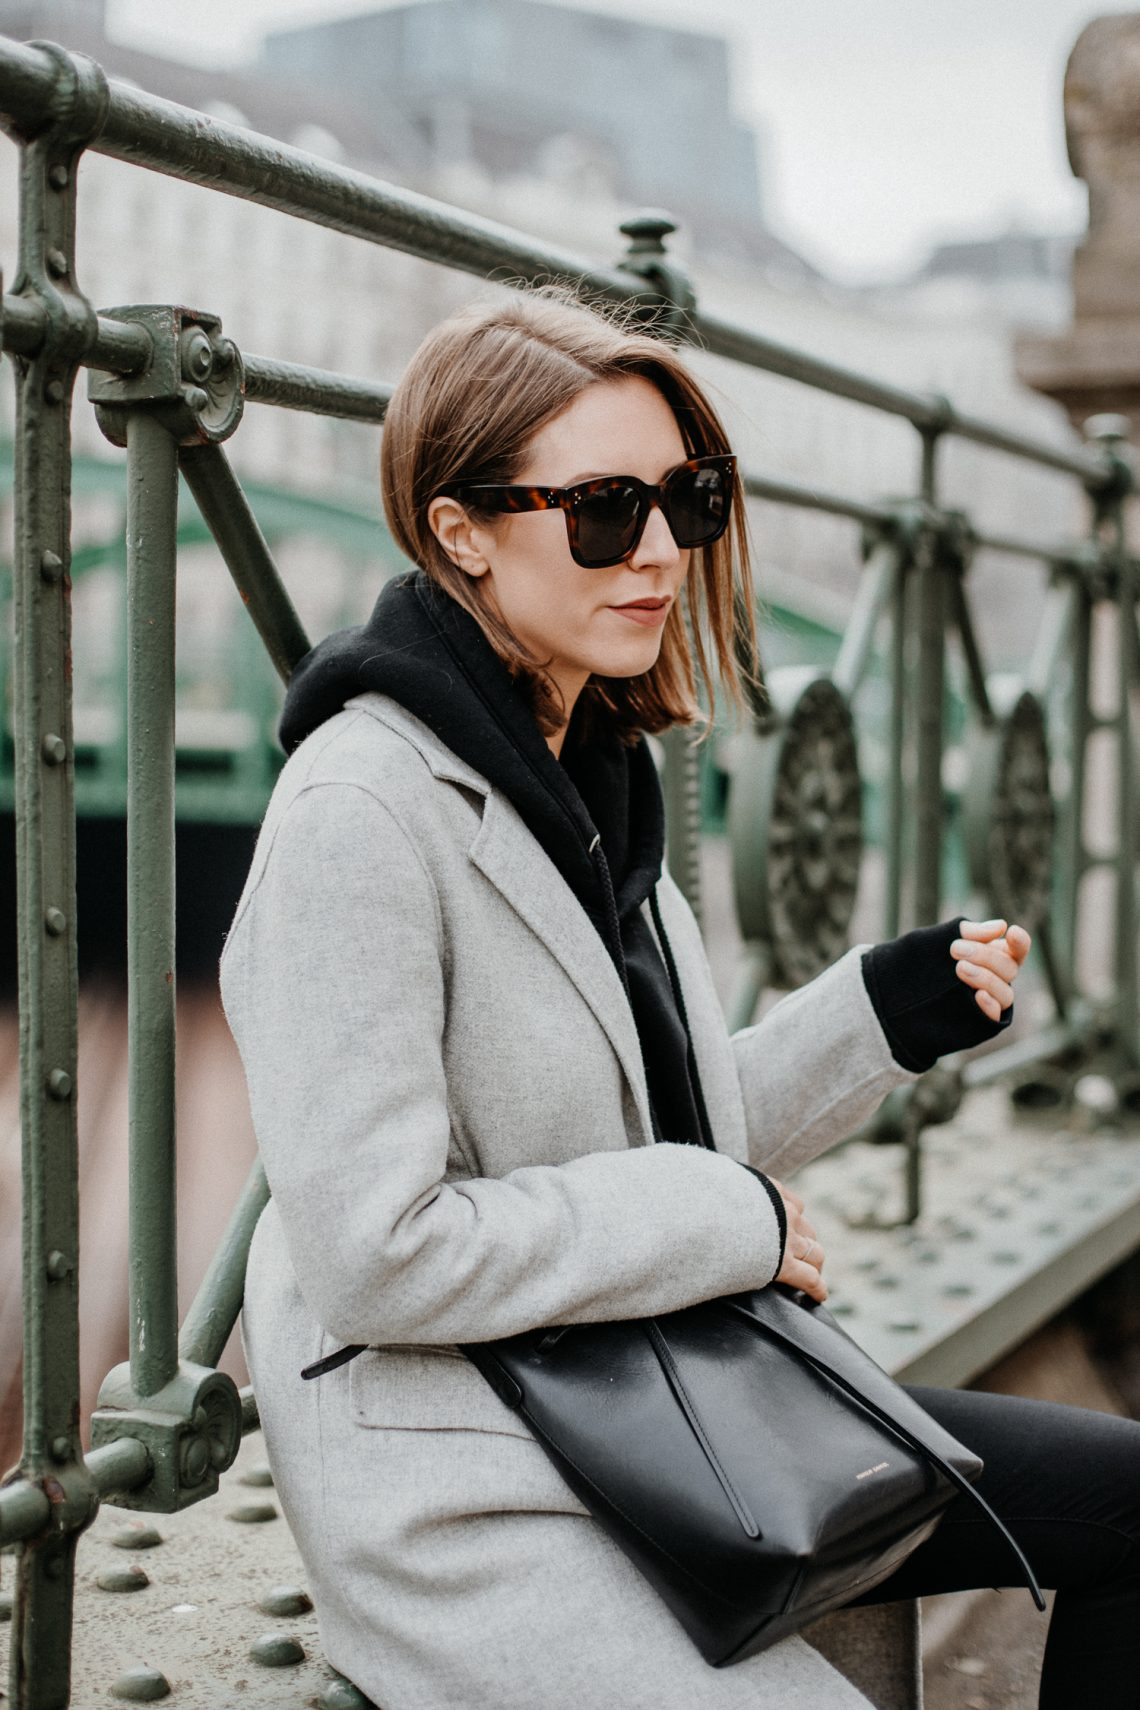 Editor's Pick: The Sweatshirt